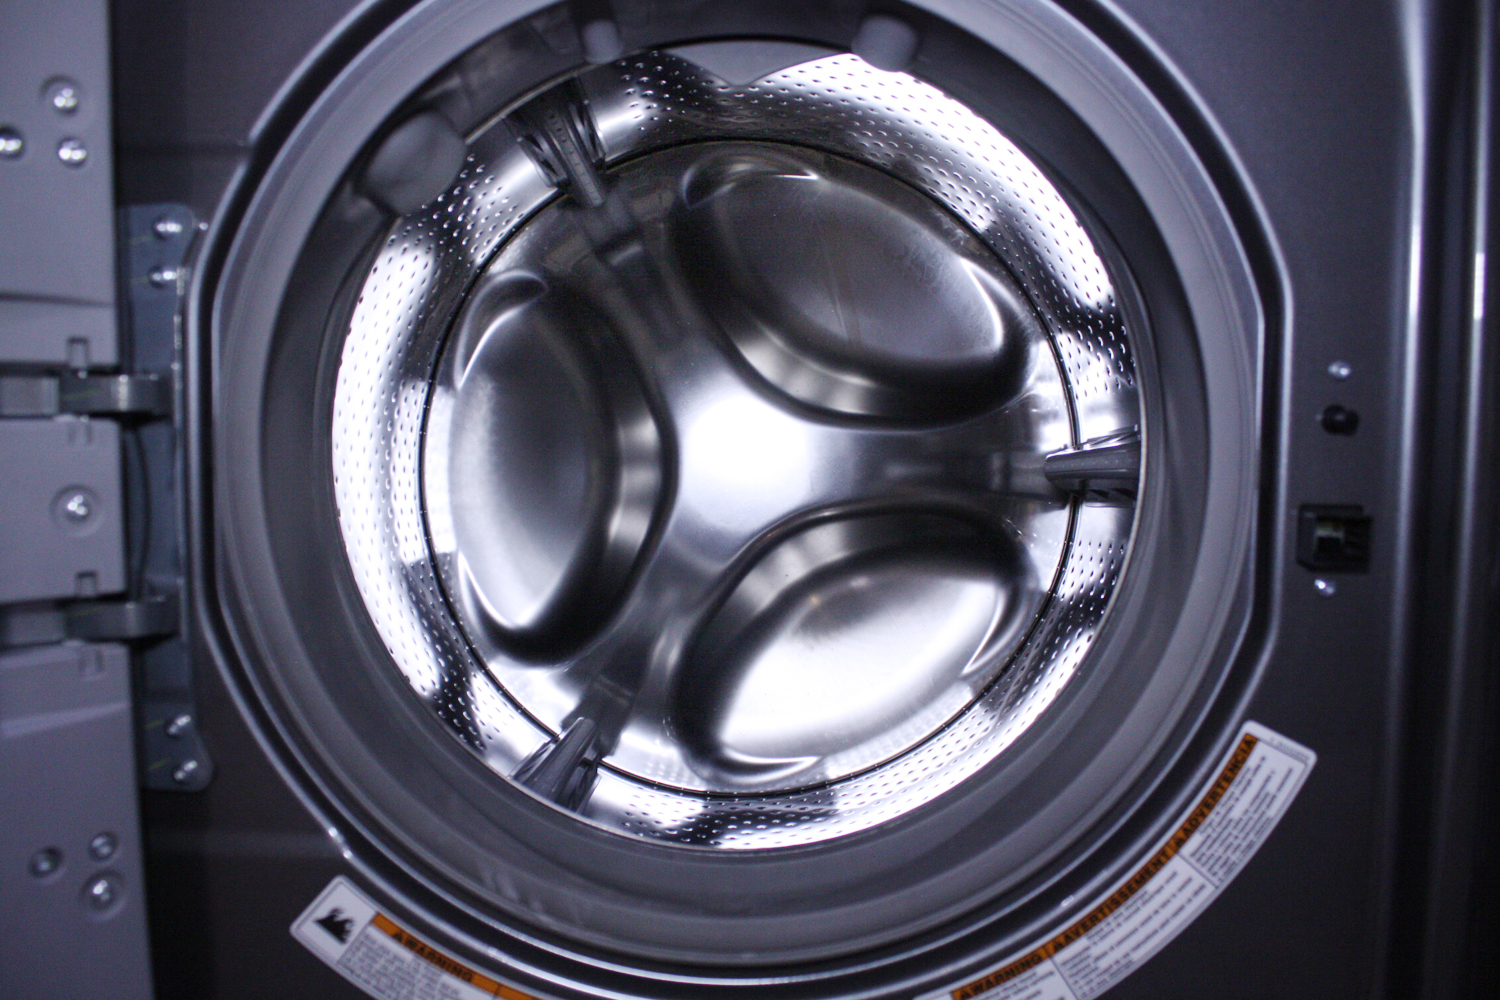 how to remove change from front load washer inner basket